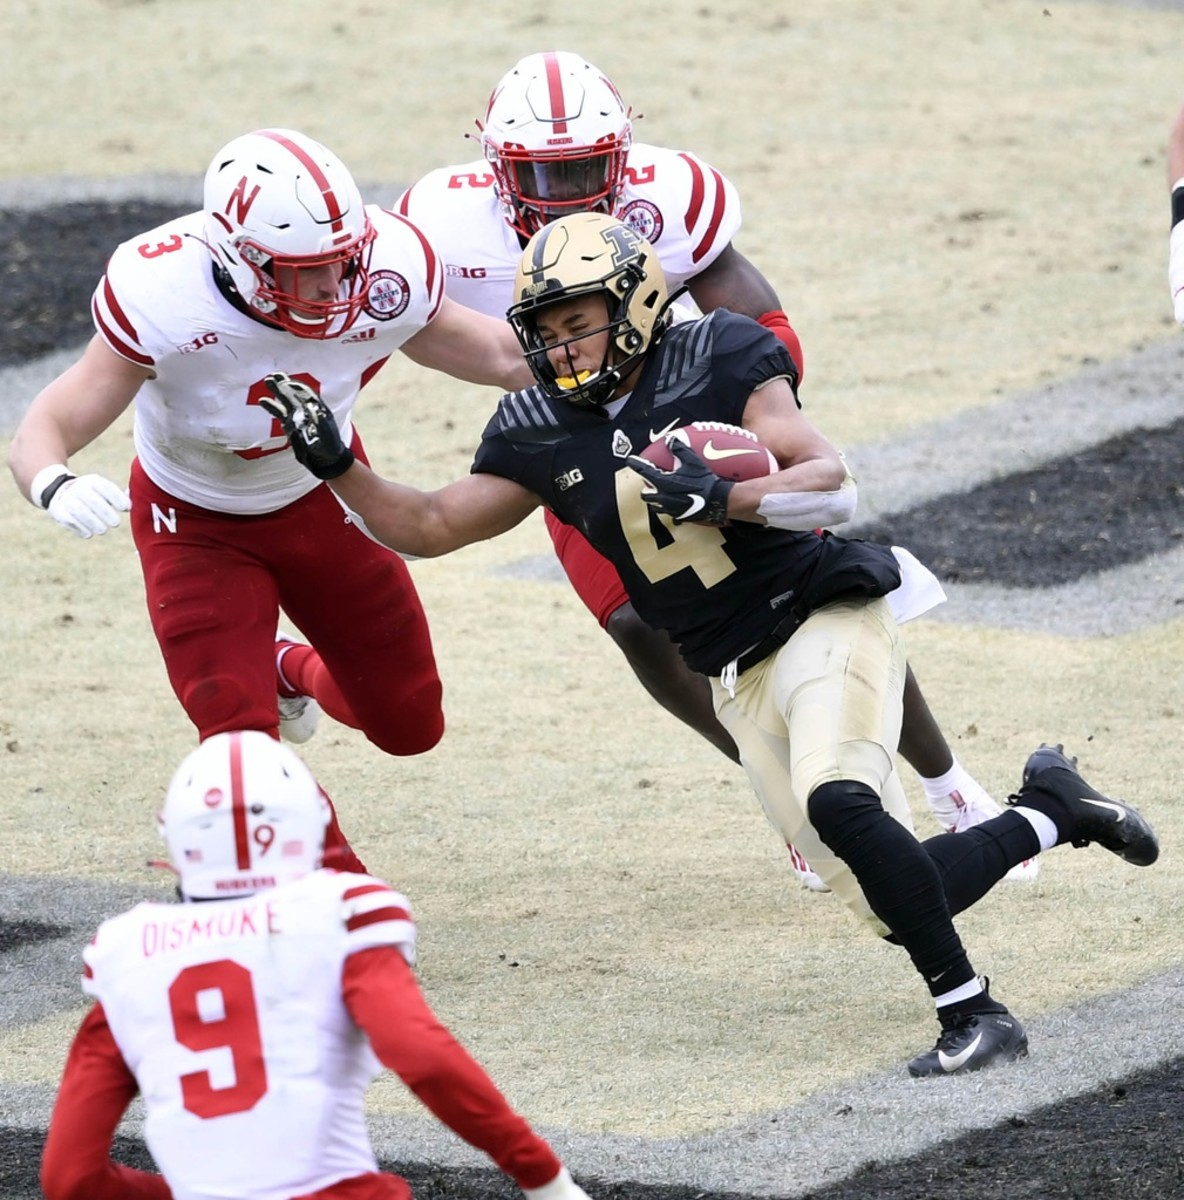 Purdue Boilermakers receiver Rondale Moore (4) attempts to evade tackle against multiple Nebraska Cornhuskers. Mandatory Credit: Marc Lebryk-USA TODAY